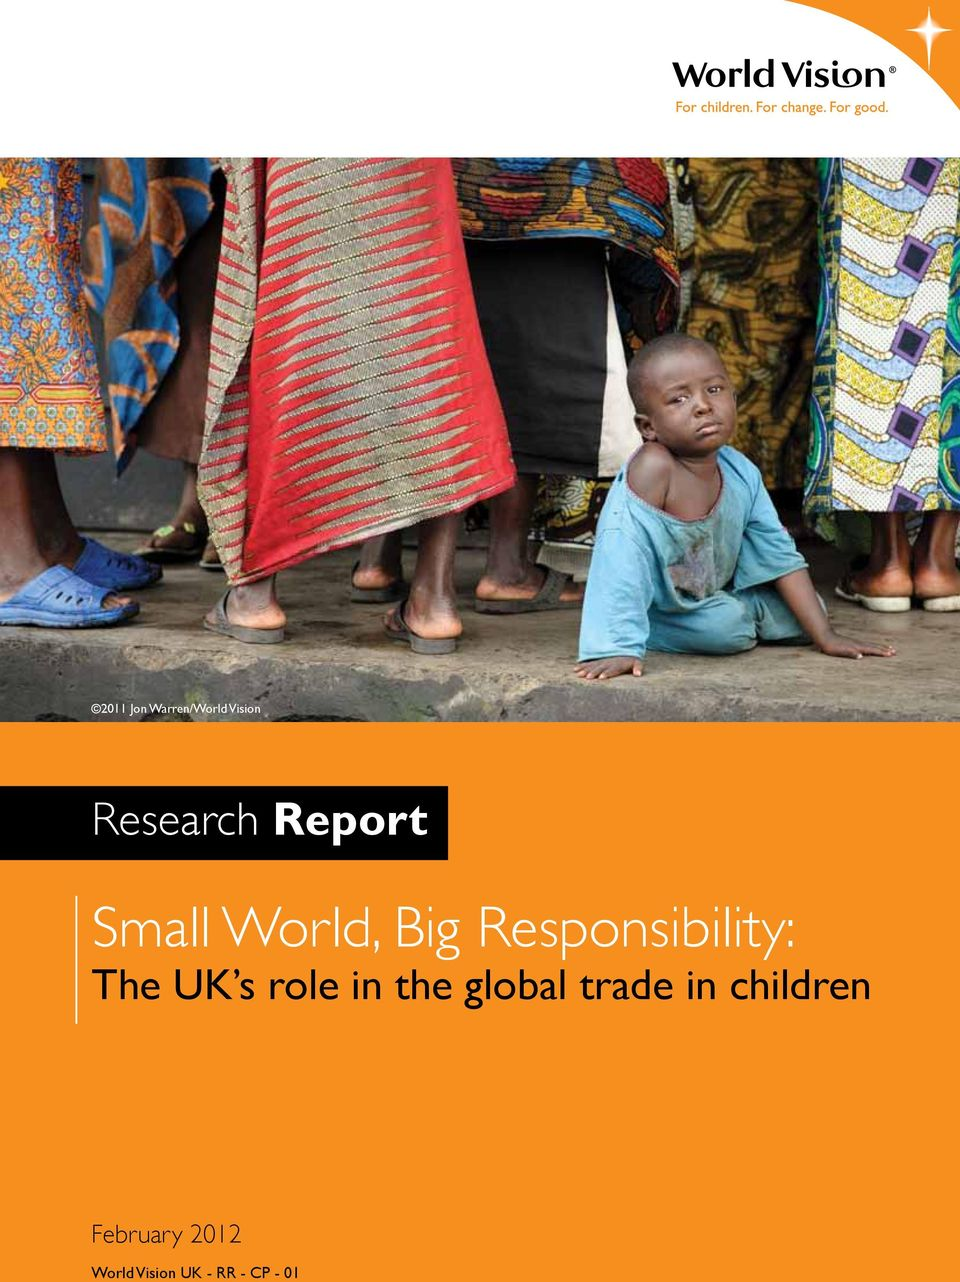 in the global trade in children World Vision UK